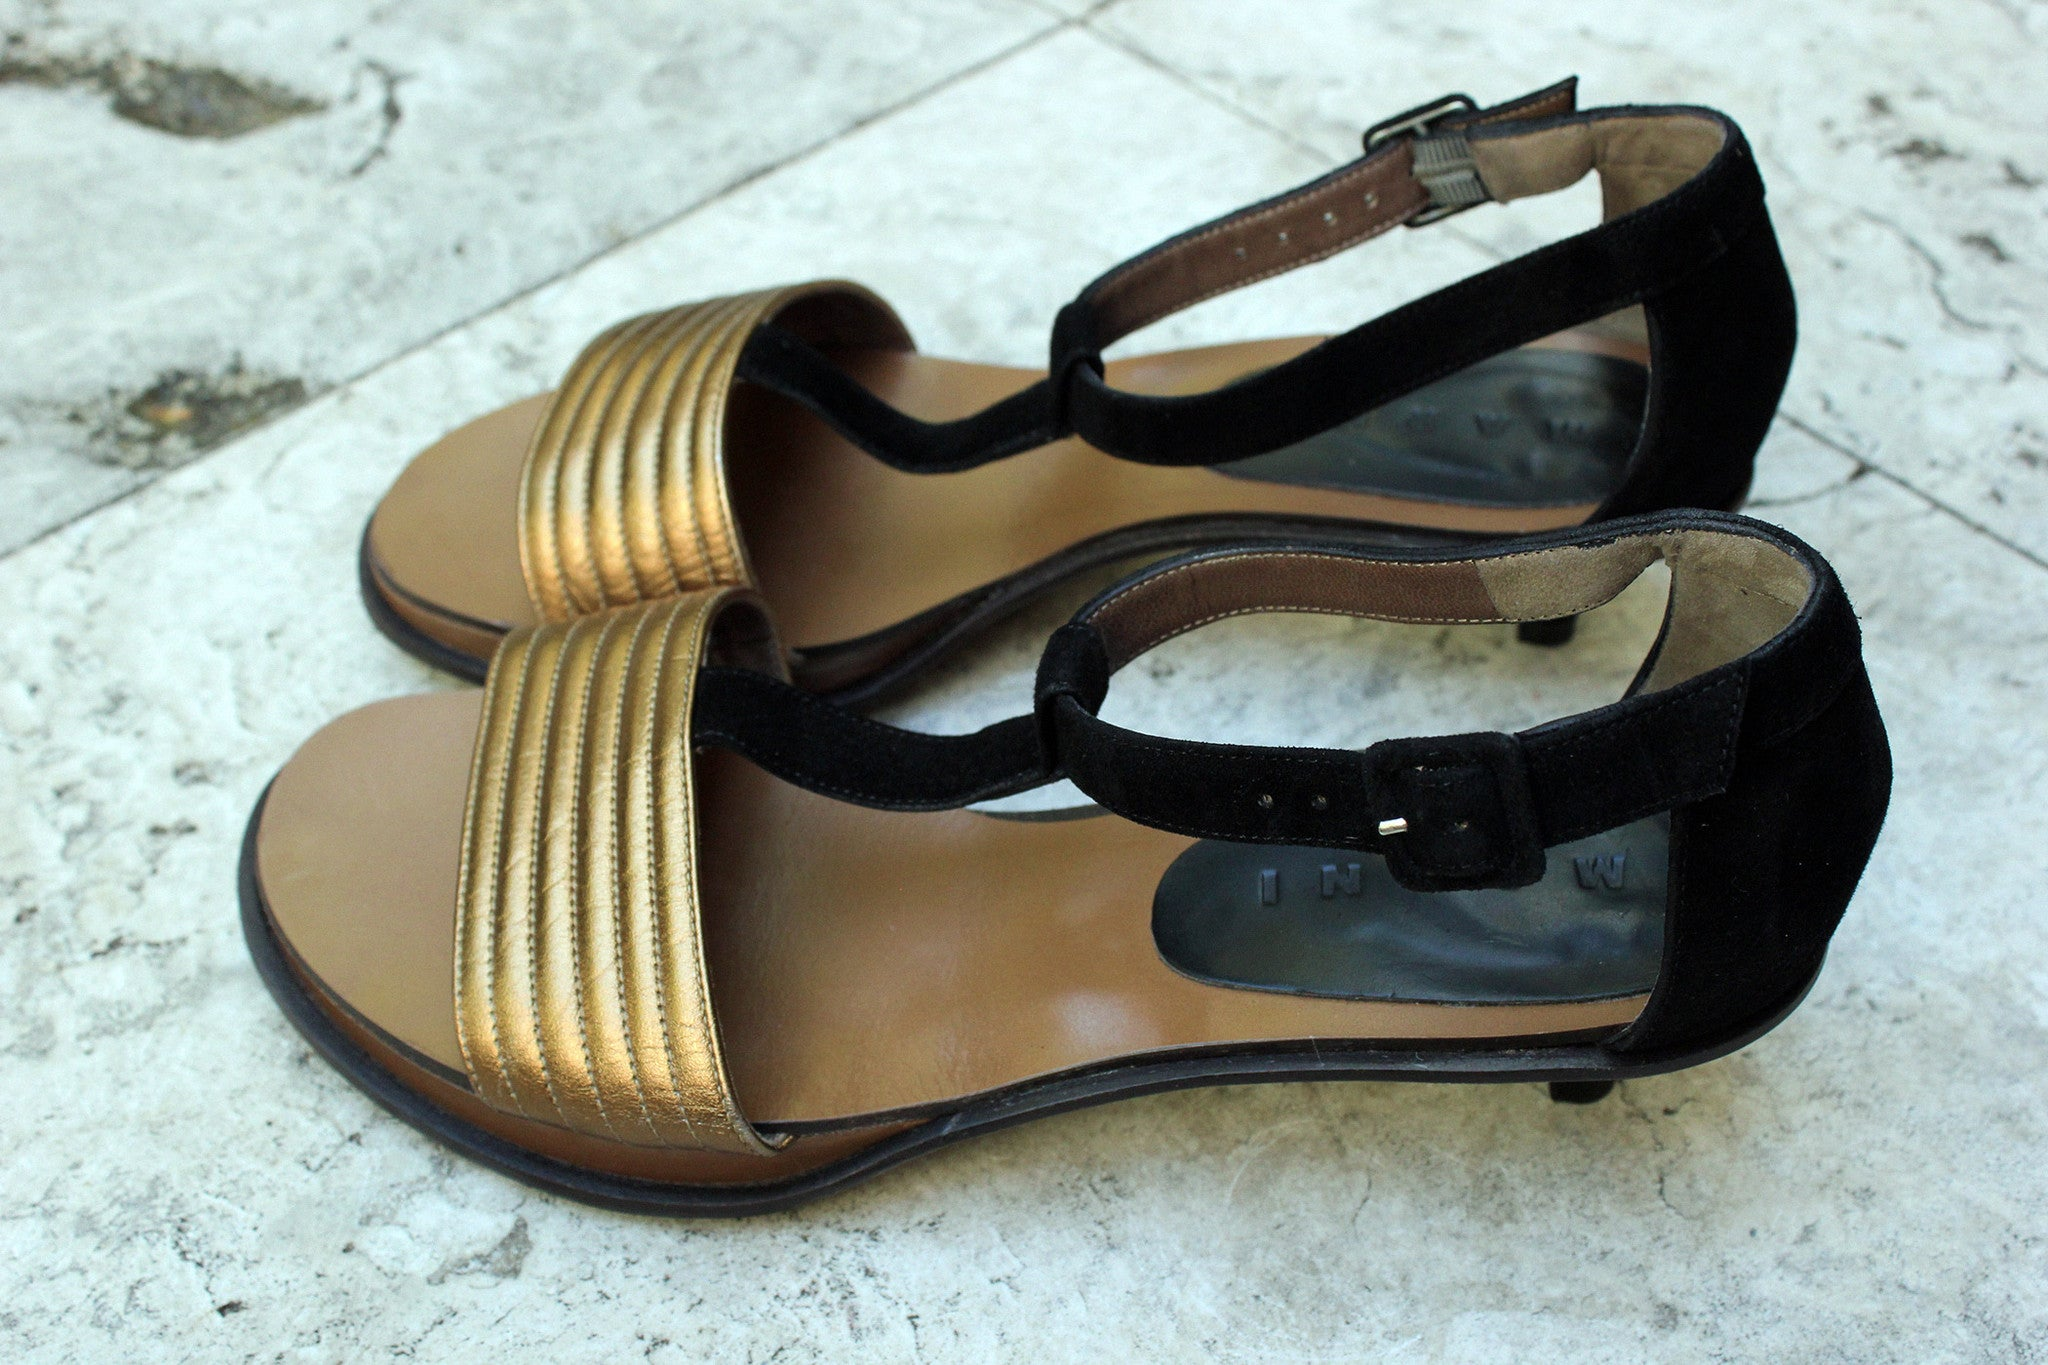 Vintage Marni Metallic Sandals